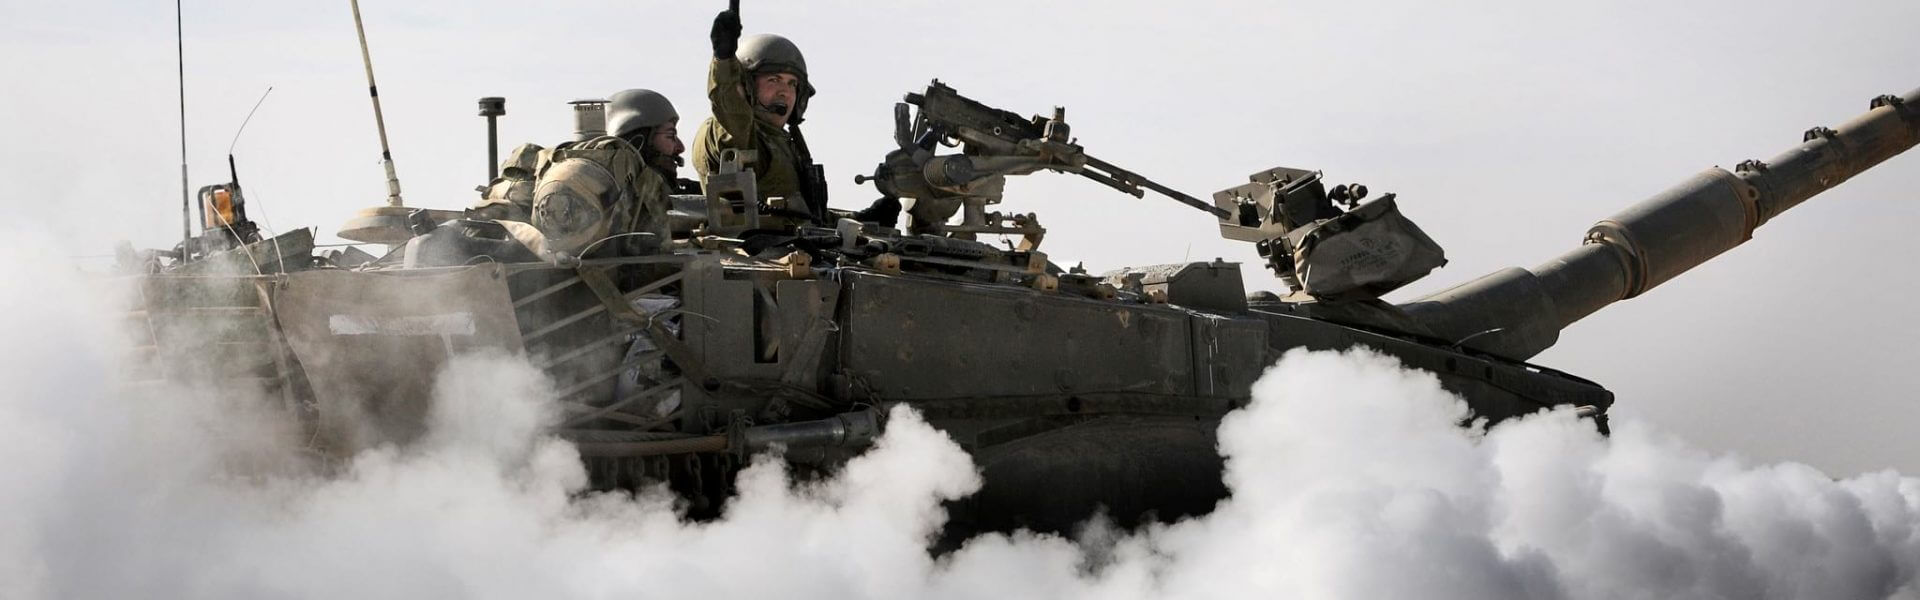 The Armored and Engineering Corps take part in a joint reserves exercise. Photo taken by Ori Shifrin, IDF Spokesperson Unit